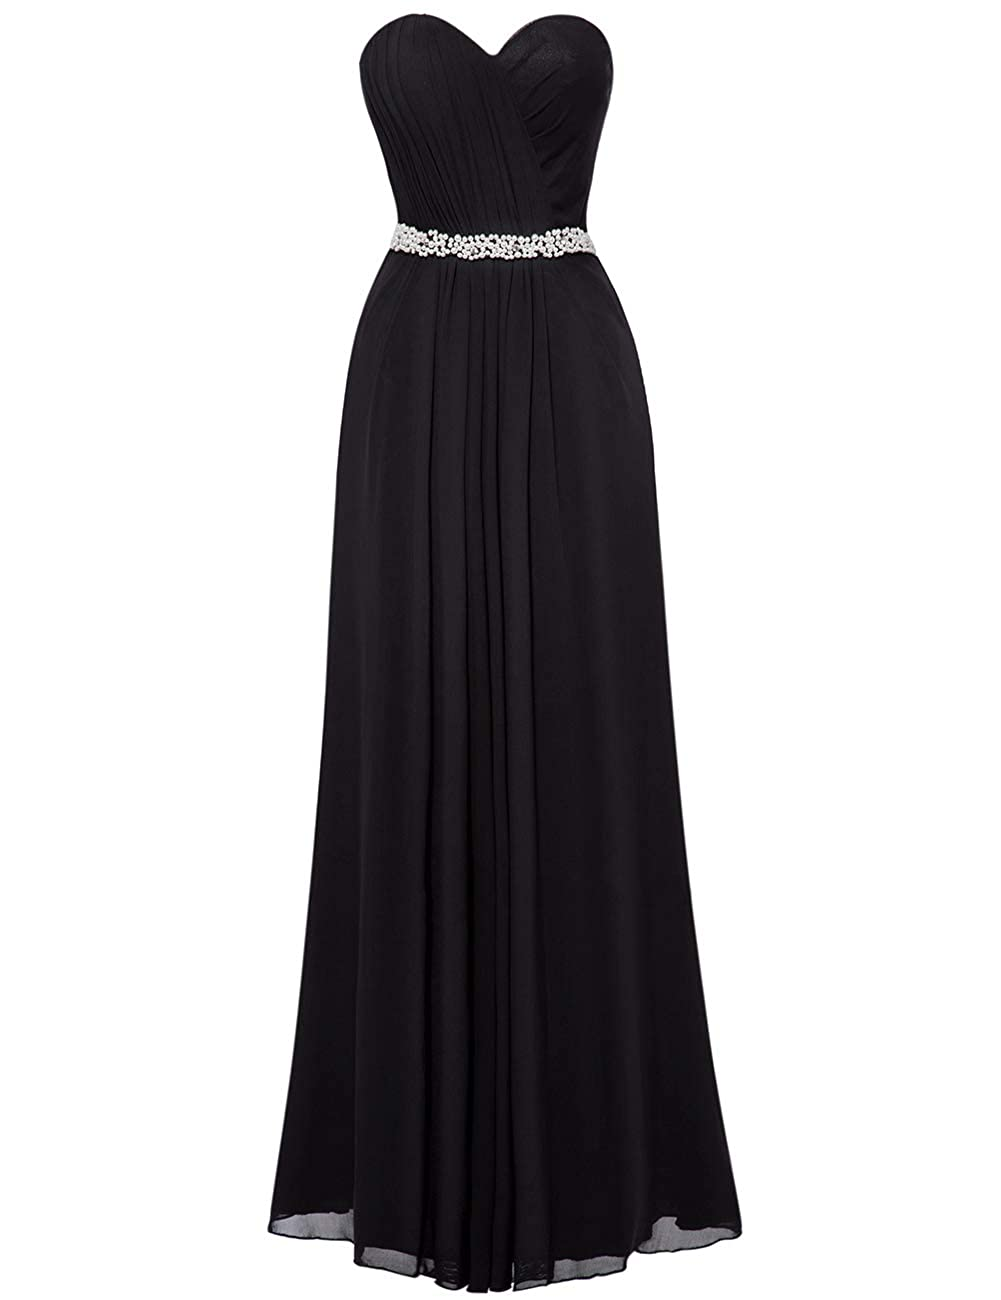 Black Uther Bridesmaid Dresses Sweetheart Pleats Long A Line Beaded Formal Women Prom Gown